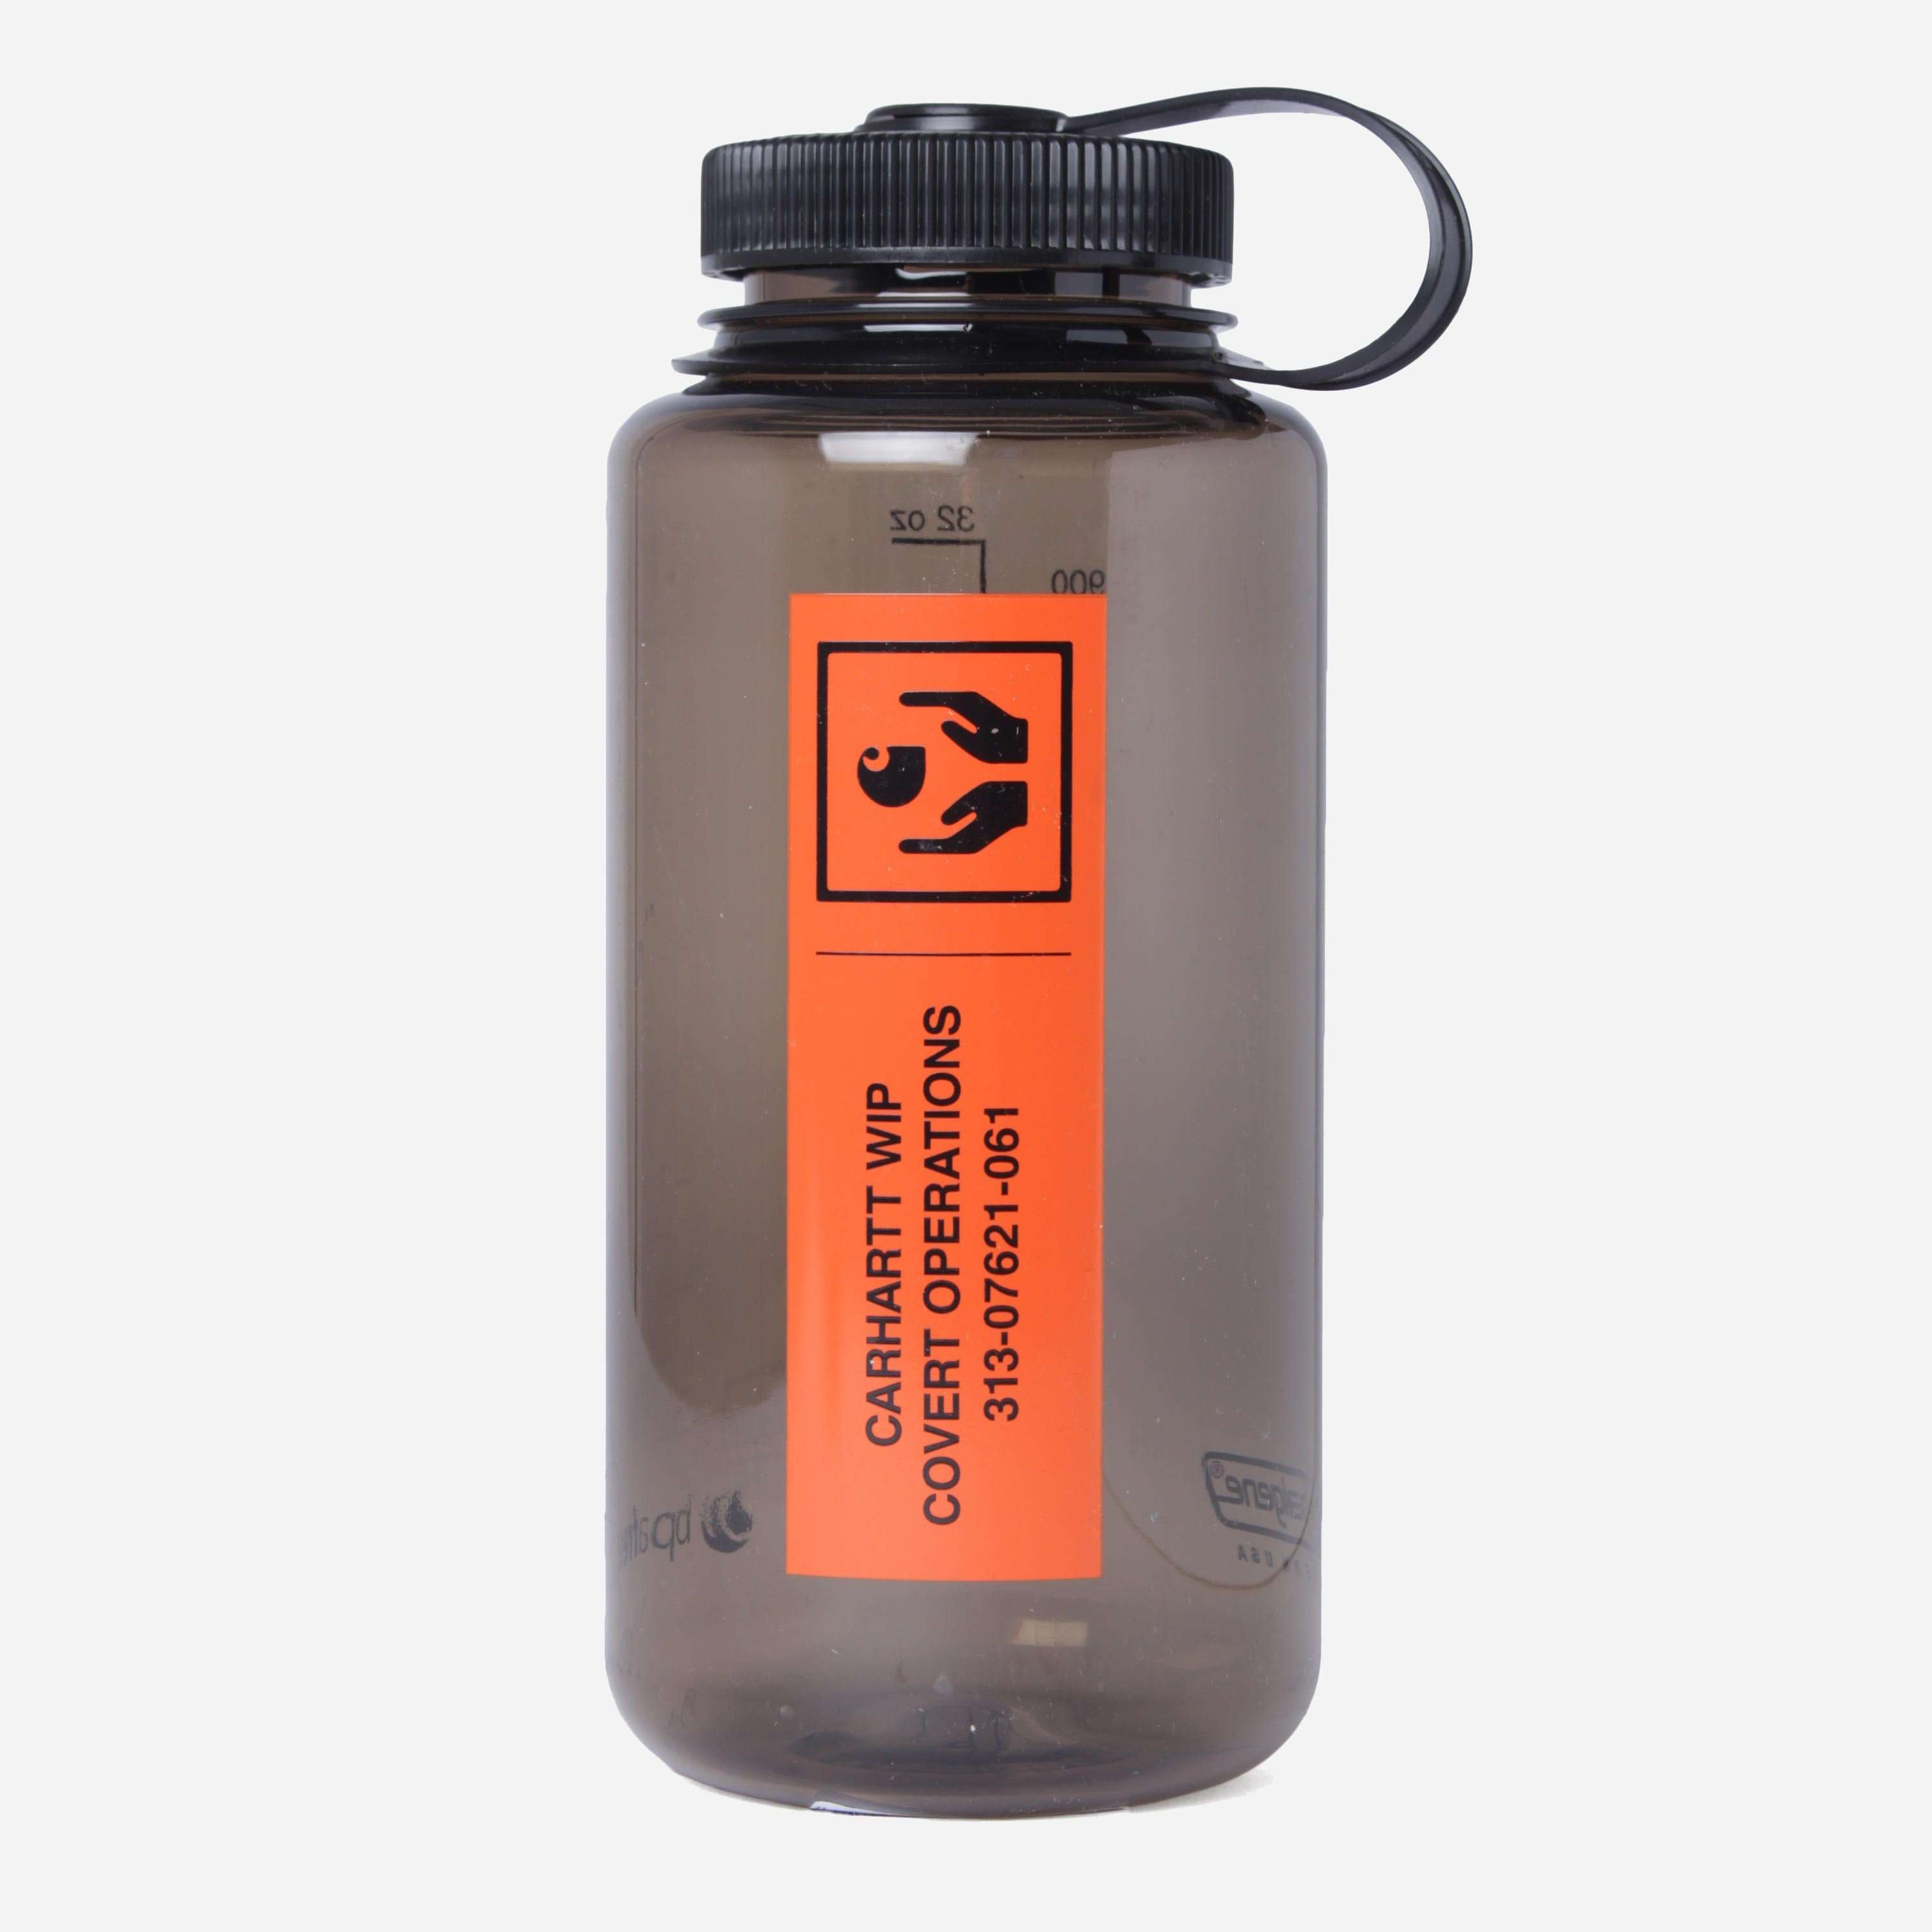 Carhartt WIP Covert Operations Bottle